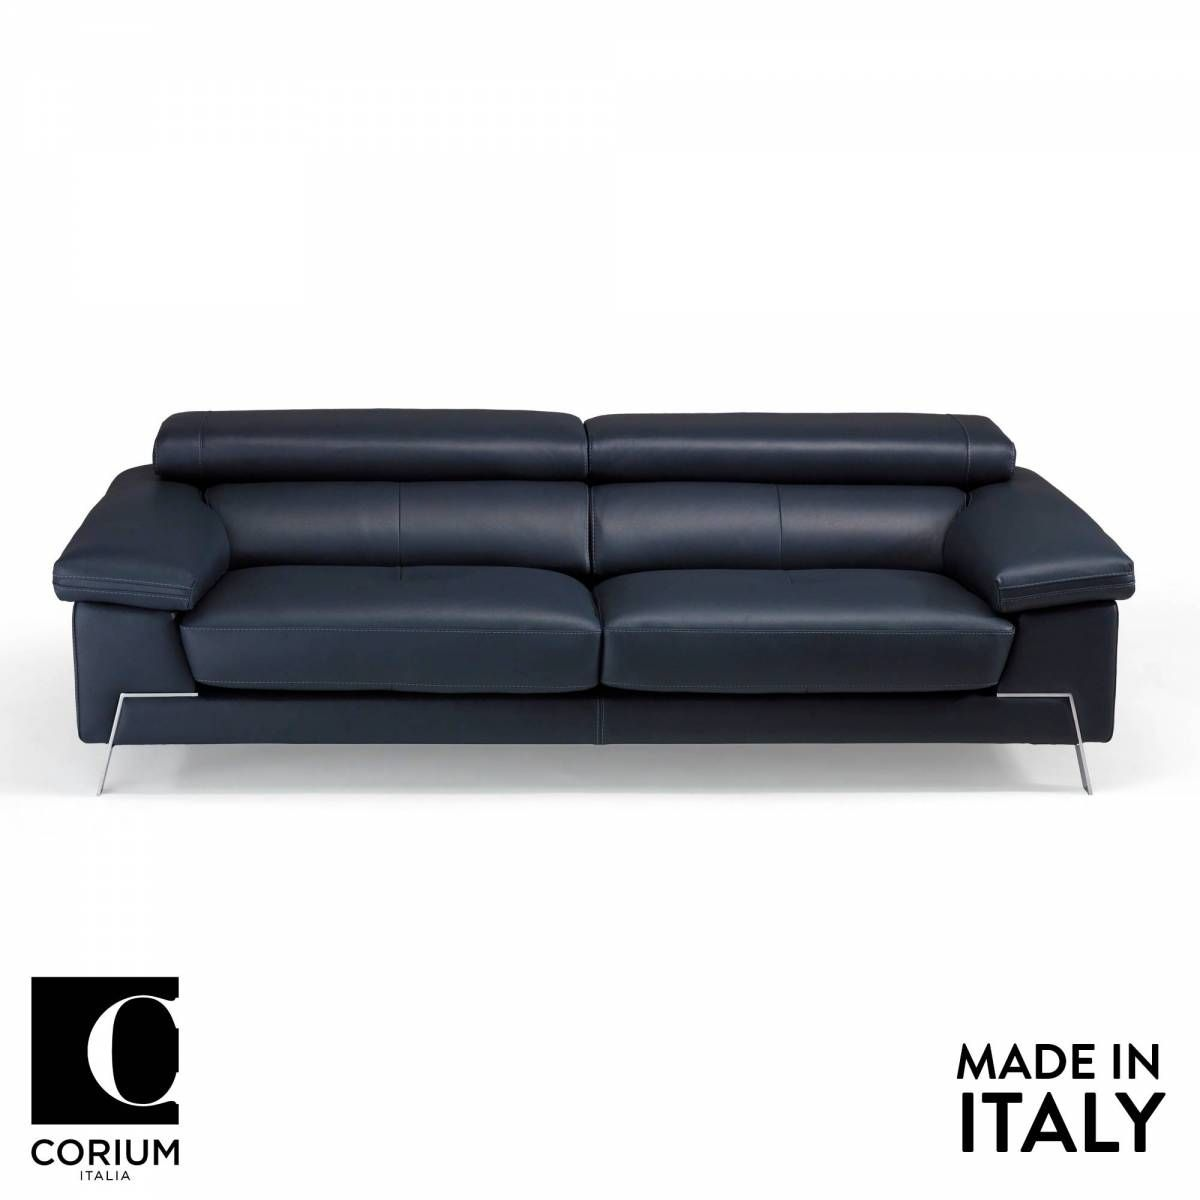 Italian Luxury Furniture Designer Furniture Singapore Da Vinci Lifestyle Living Room Decor Inspiration Sofa Design Luxury Sofa